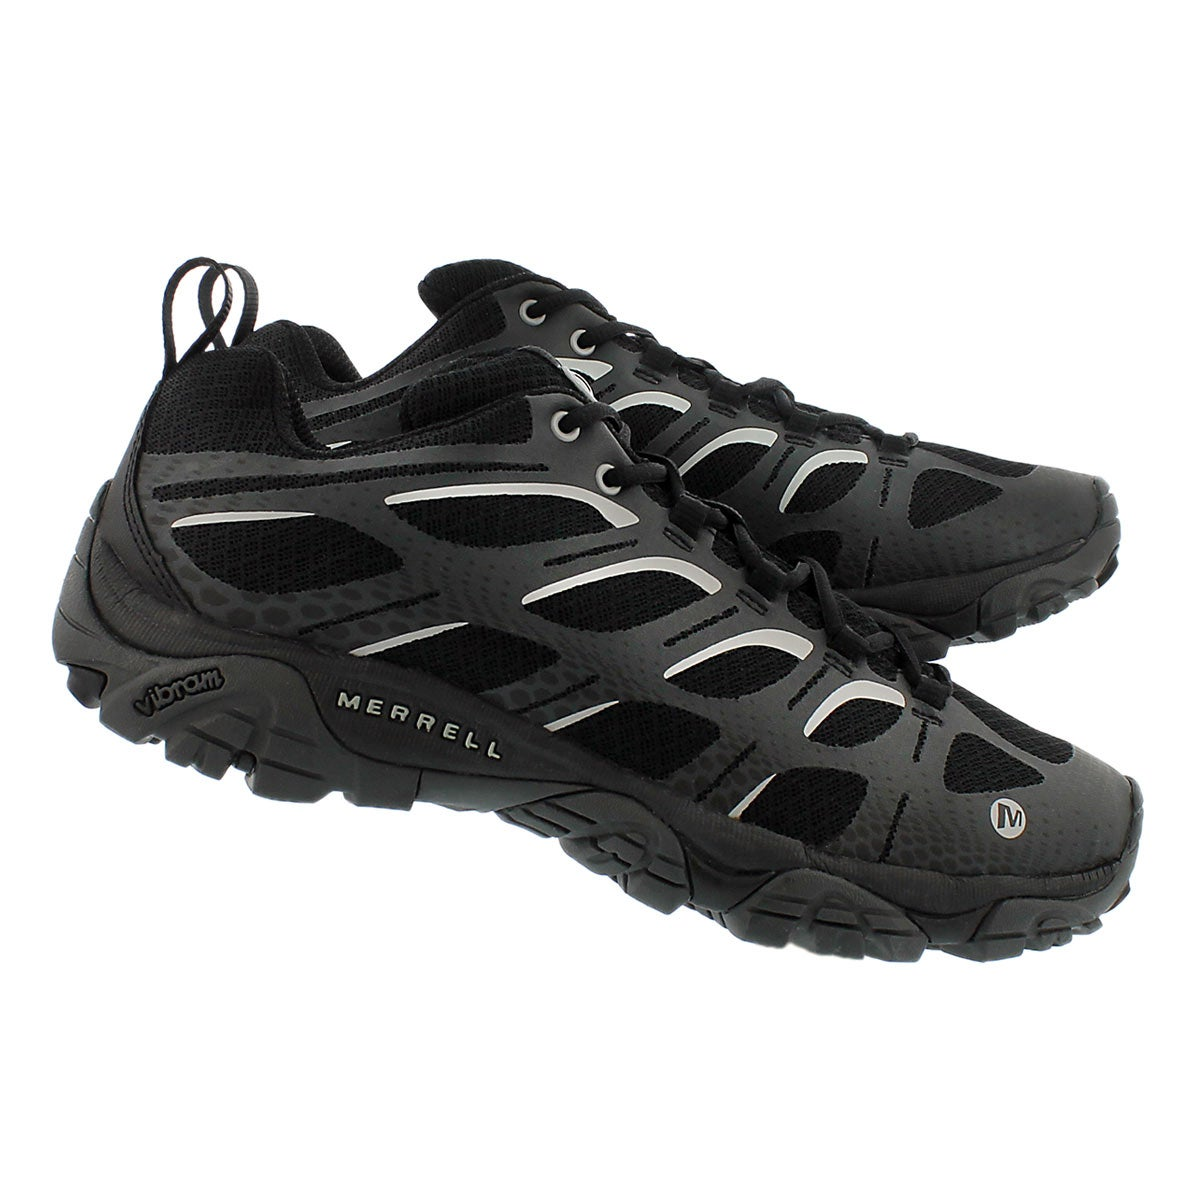 Mns MoabEdge blk/gry casual hiking shoe